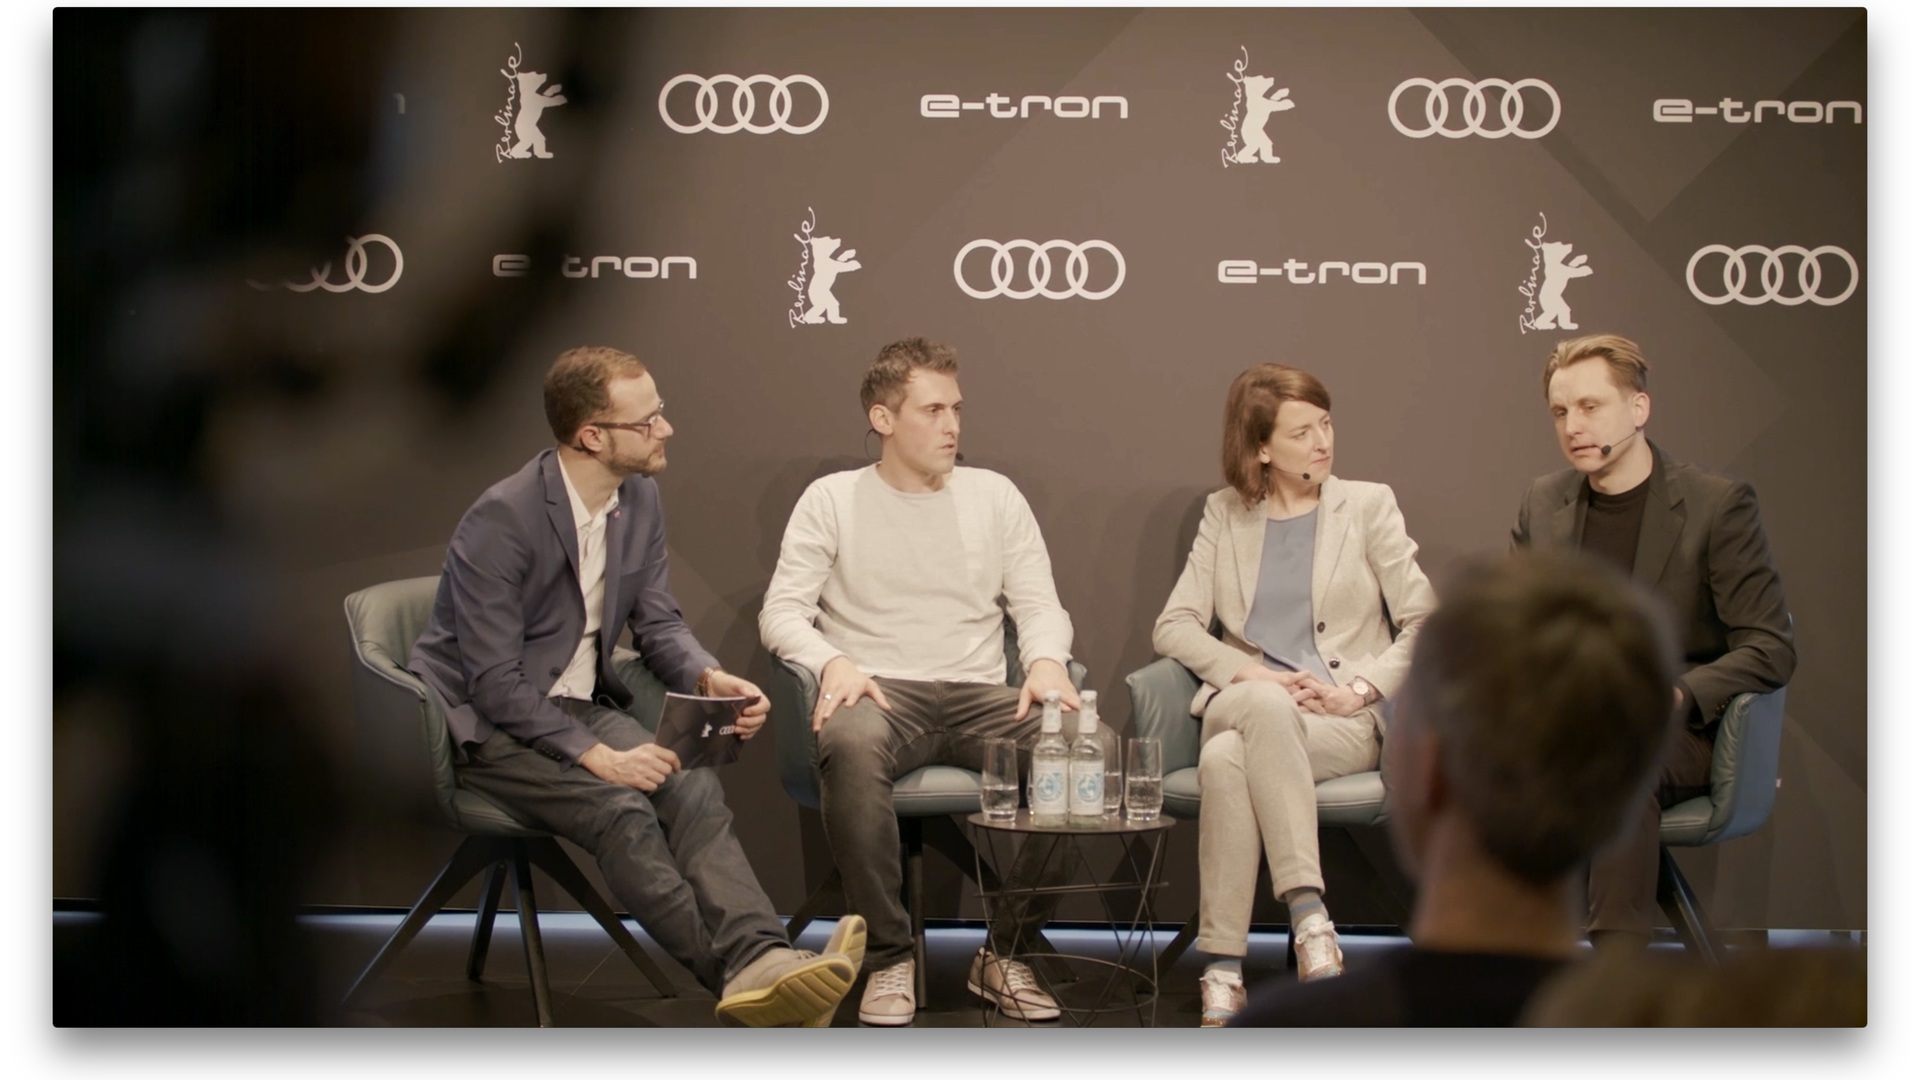 beyond Initiative meets Berlin International Film Festival 2019: Experts discuss Artificial Intelligence